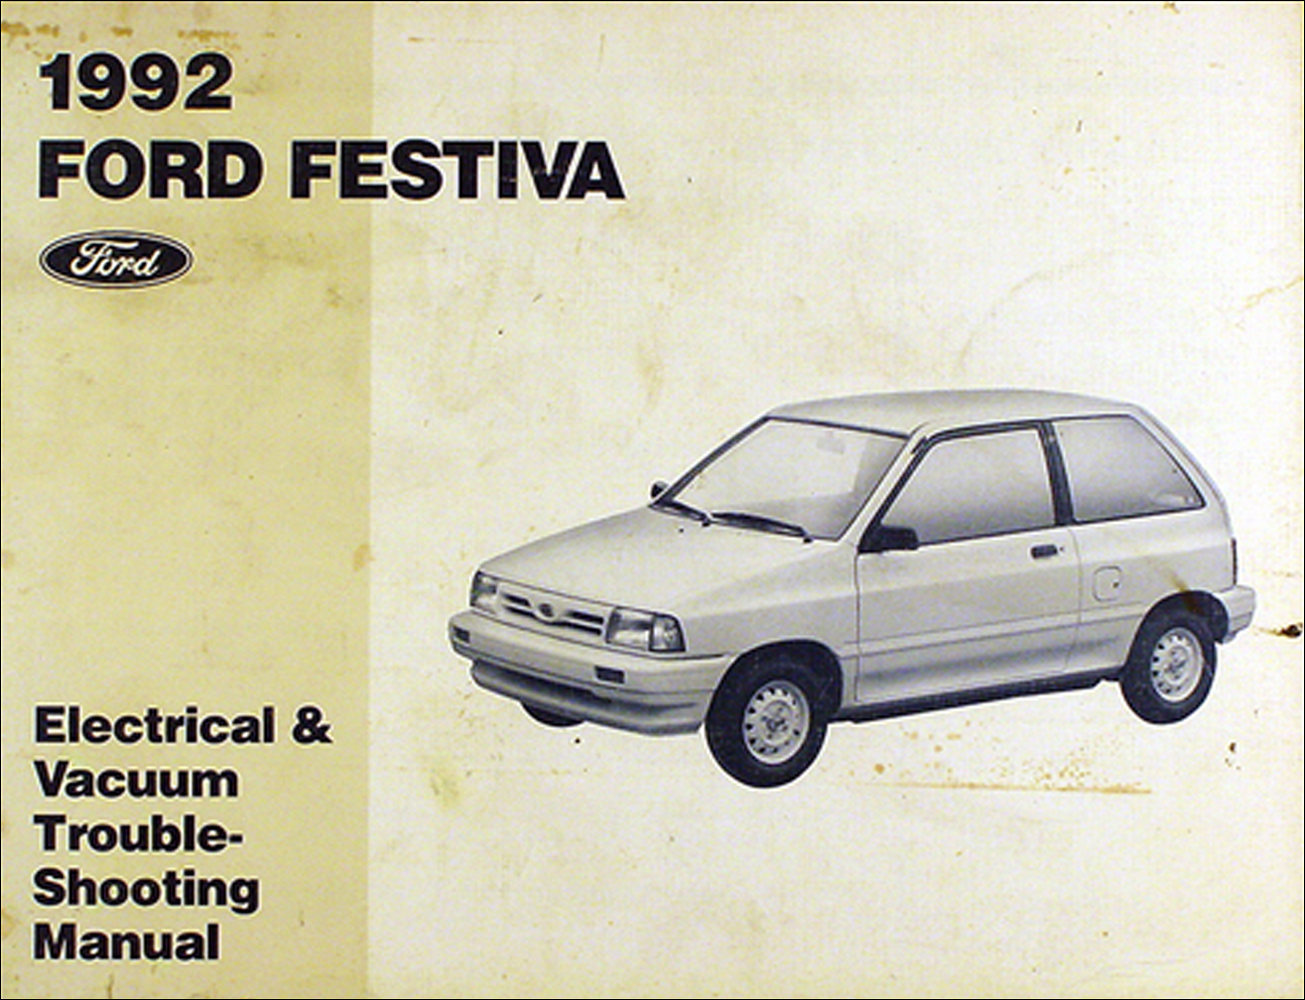 1992 ford festiva original electrical \u0026 vacuum troubleshooting manual 1992 Chevy Cavalier Wiring Diagram